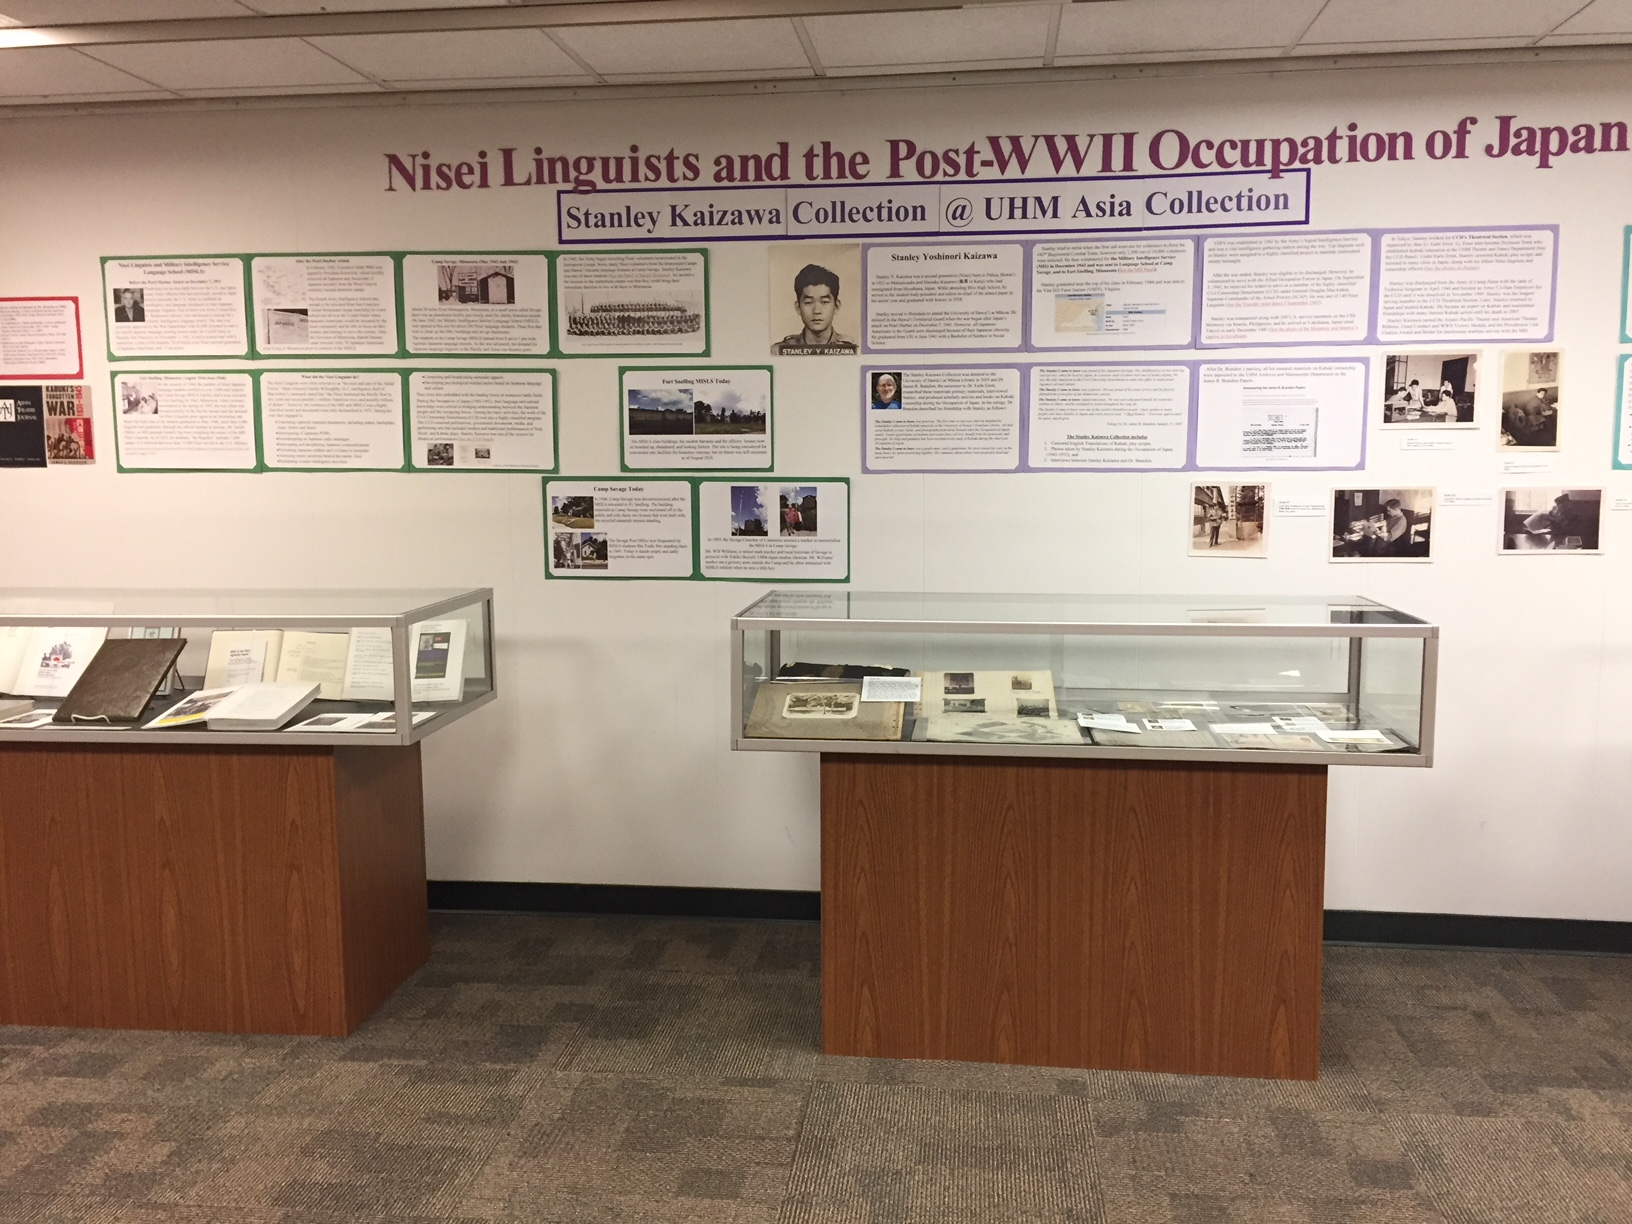 Nisei Linguists Exhibit Display. Image 3 of 4